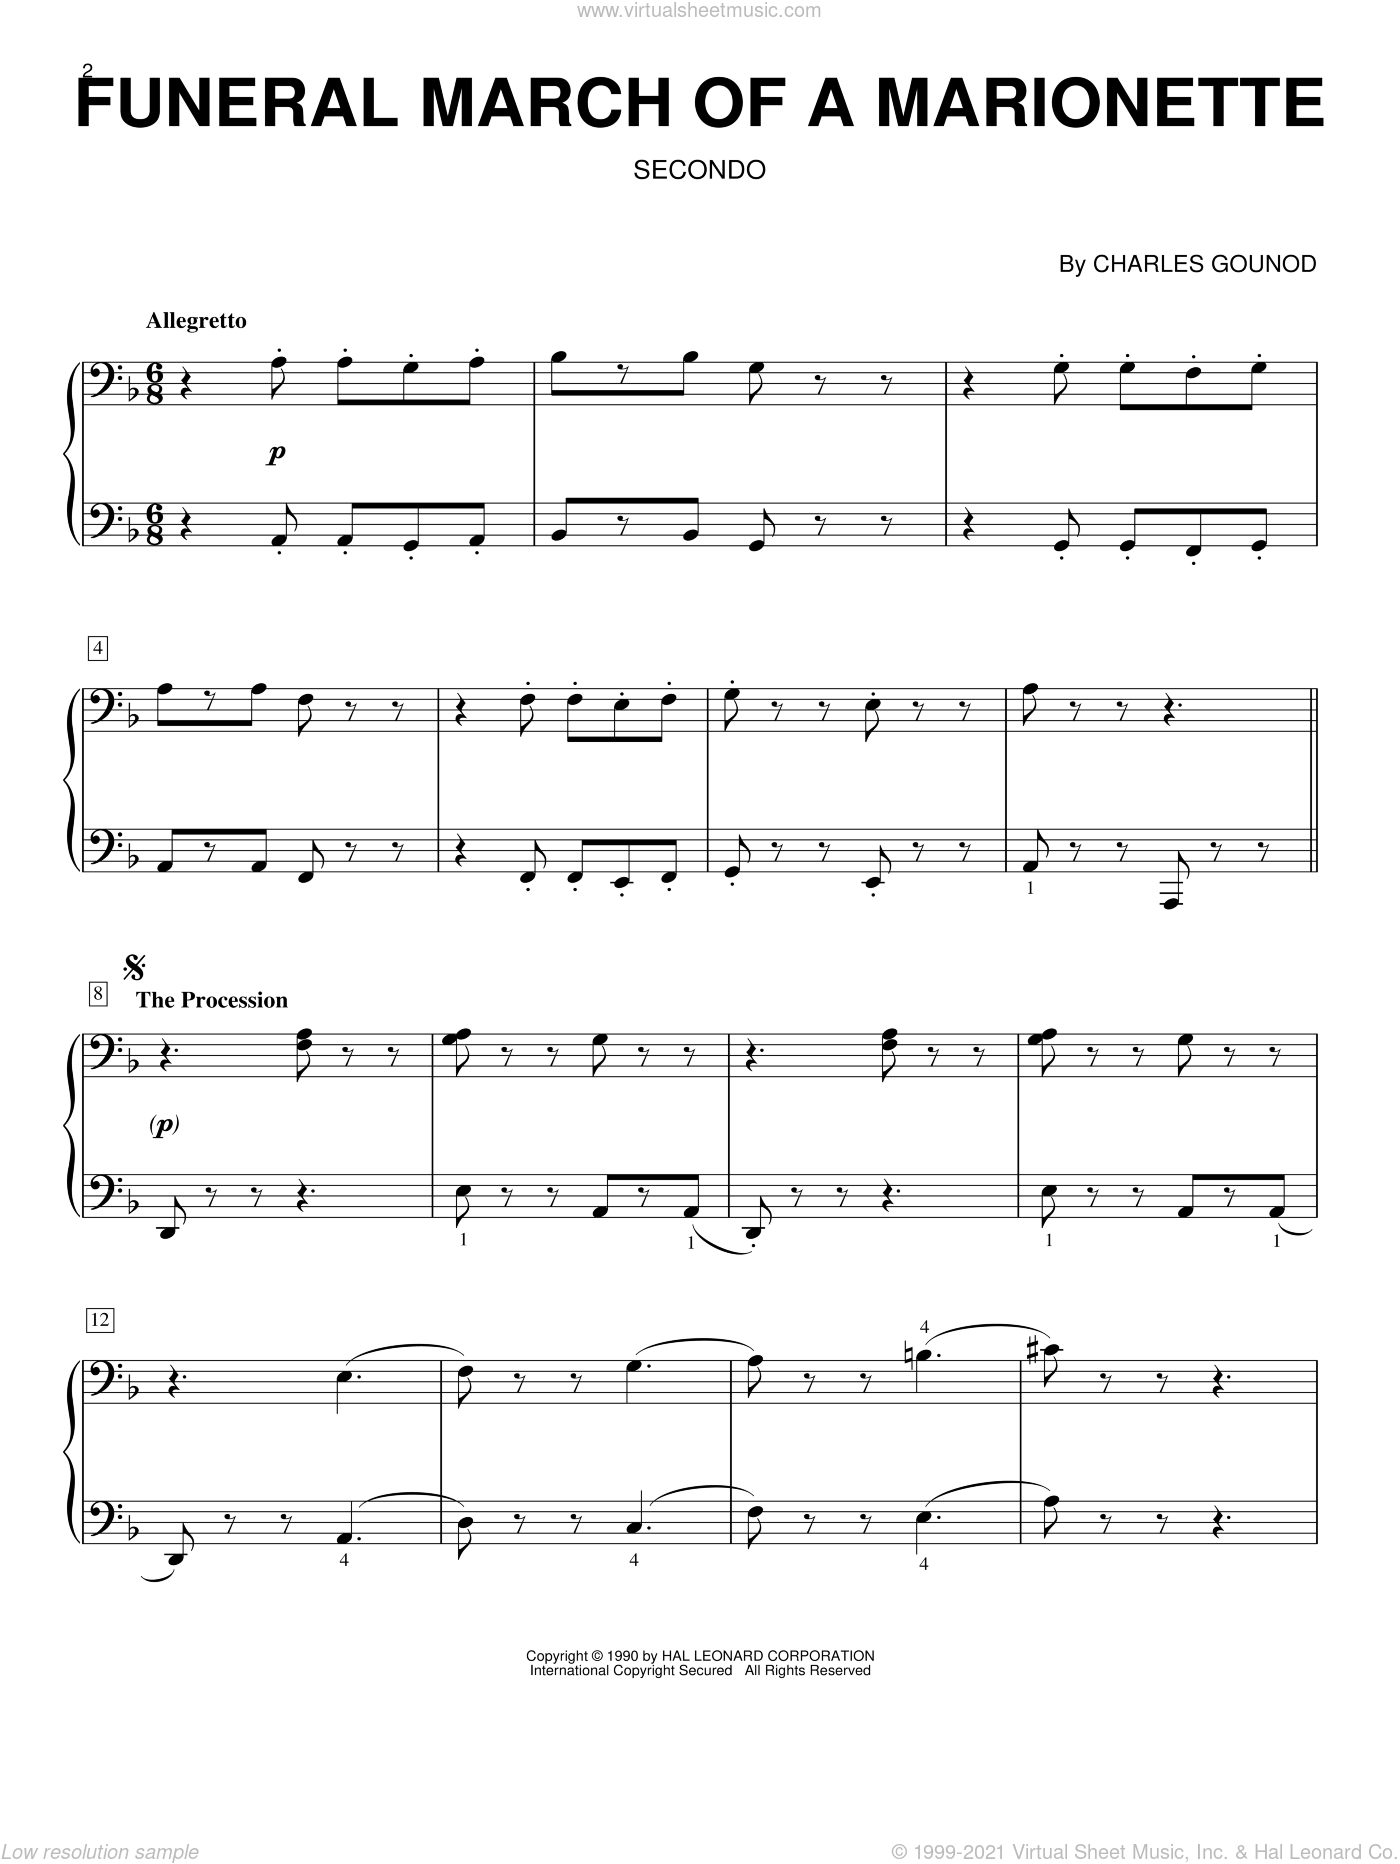 Funeral March Of A Marionette sheet music for piano four hands by Charles Gounod, classical score, intermediate skill level